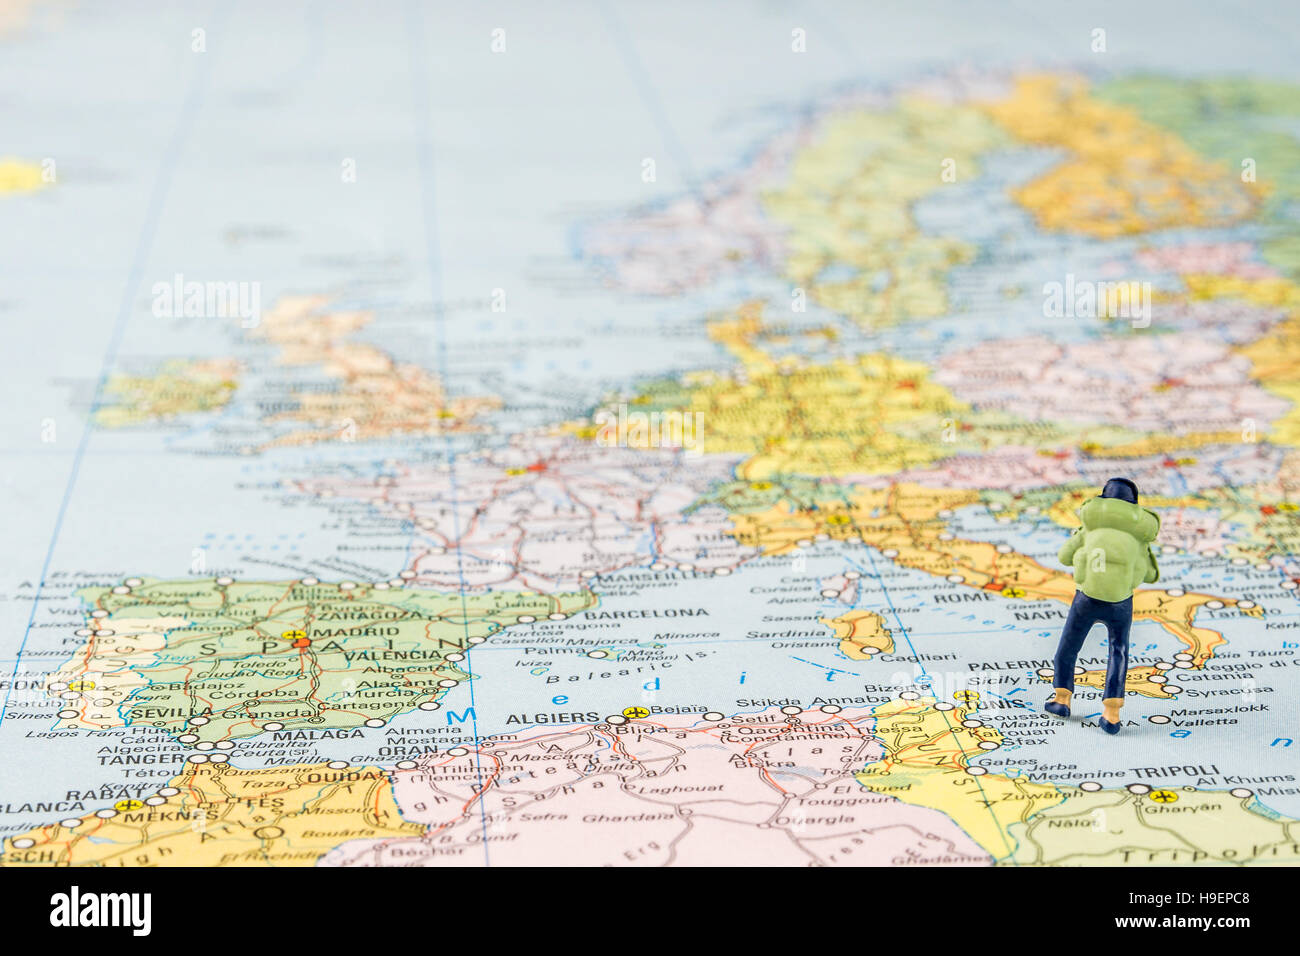 closeup of miniature figurine of young traveller standing on big map next to Europe continent - Stock Image